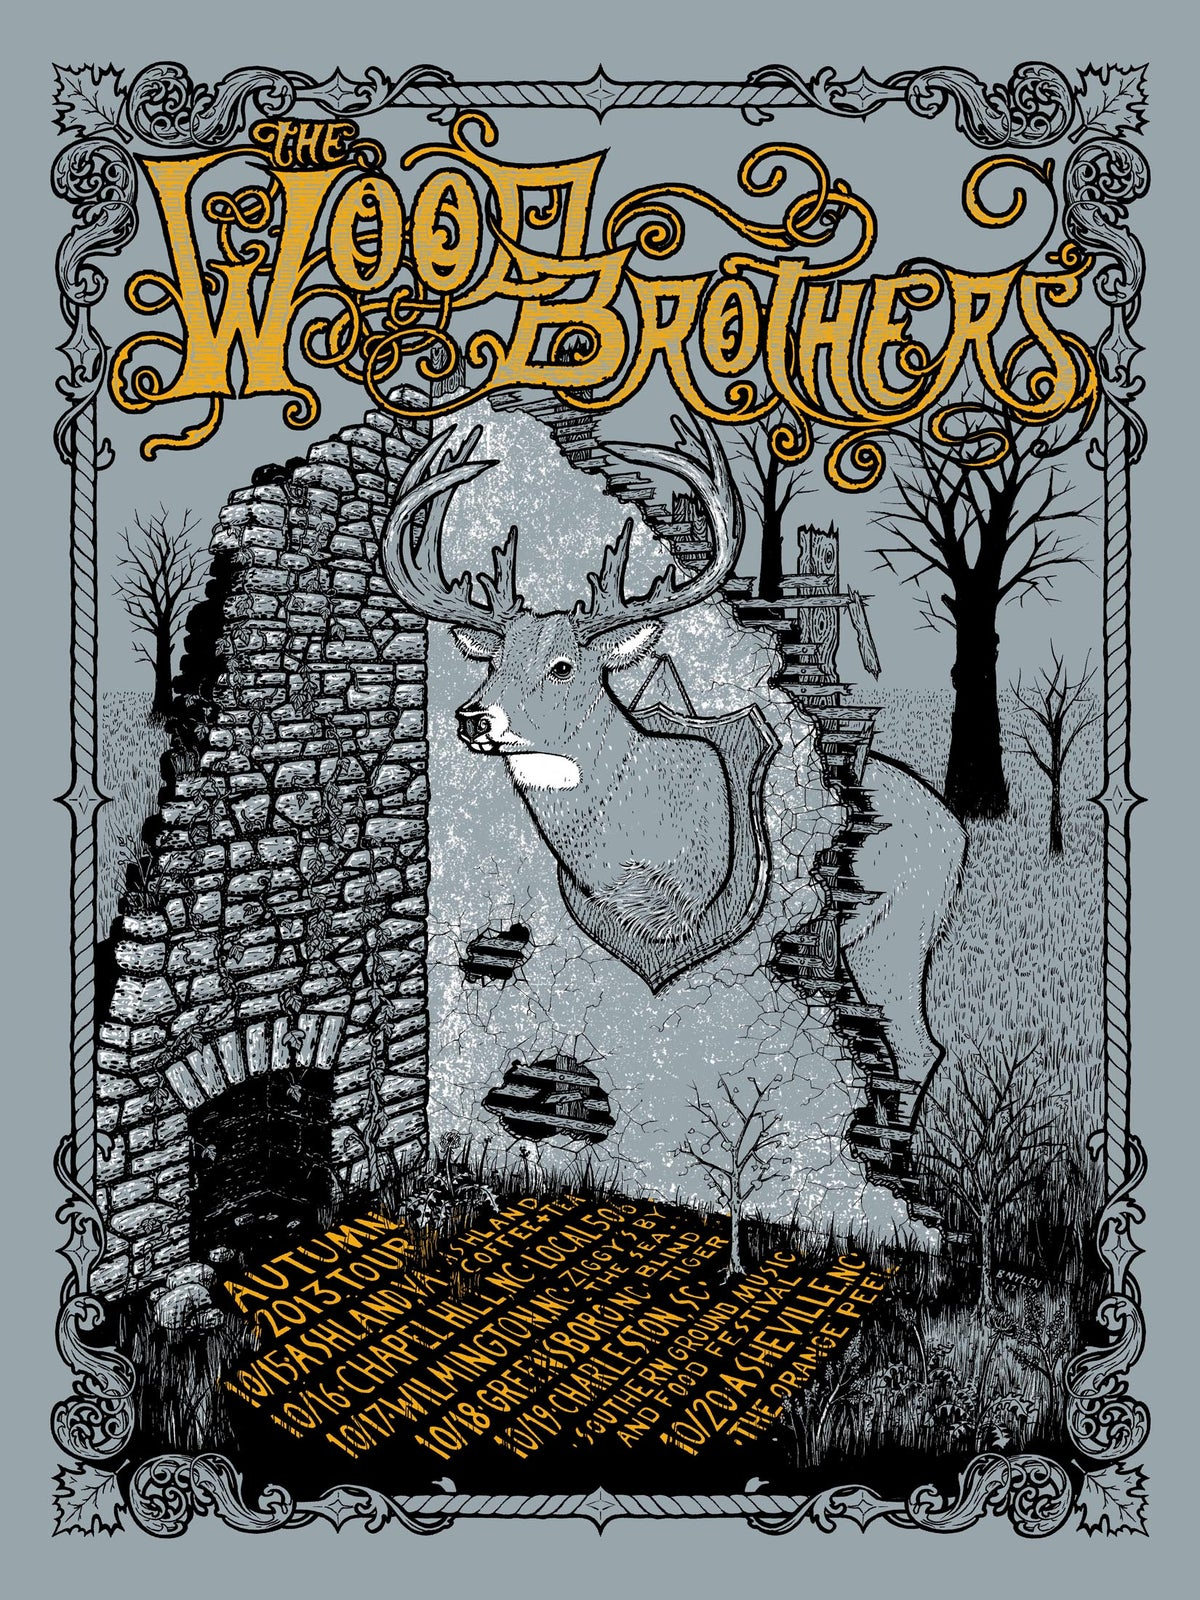 Image of The Wood Brothers, Autumn 2013 Tour